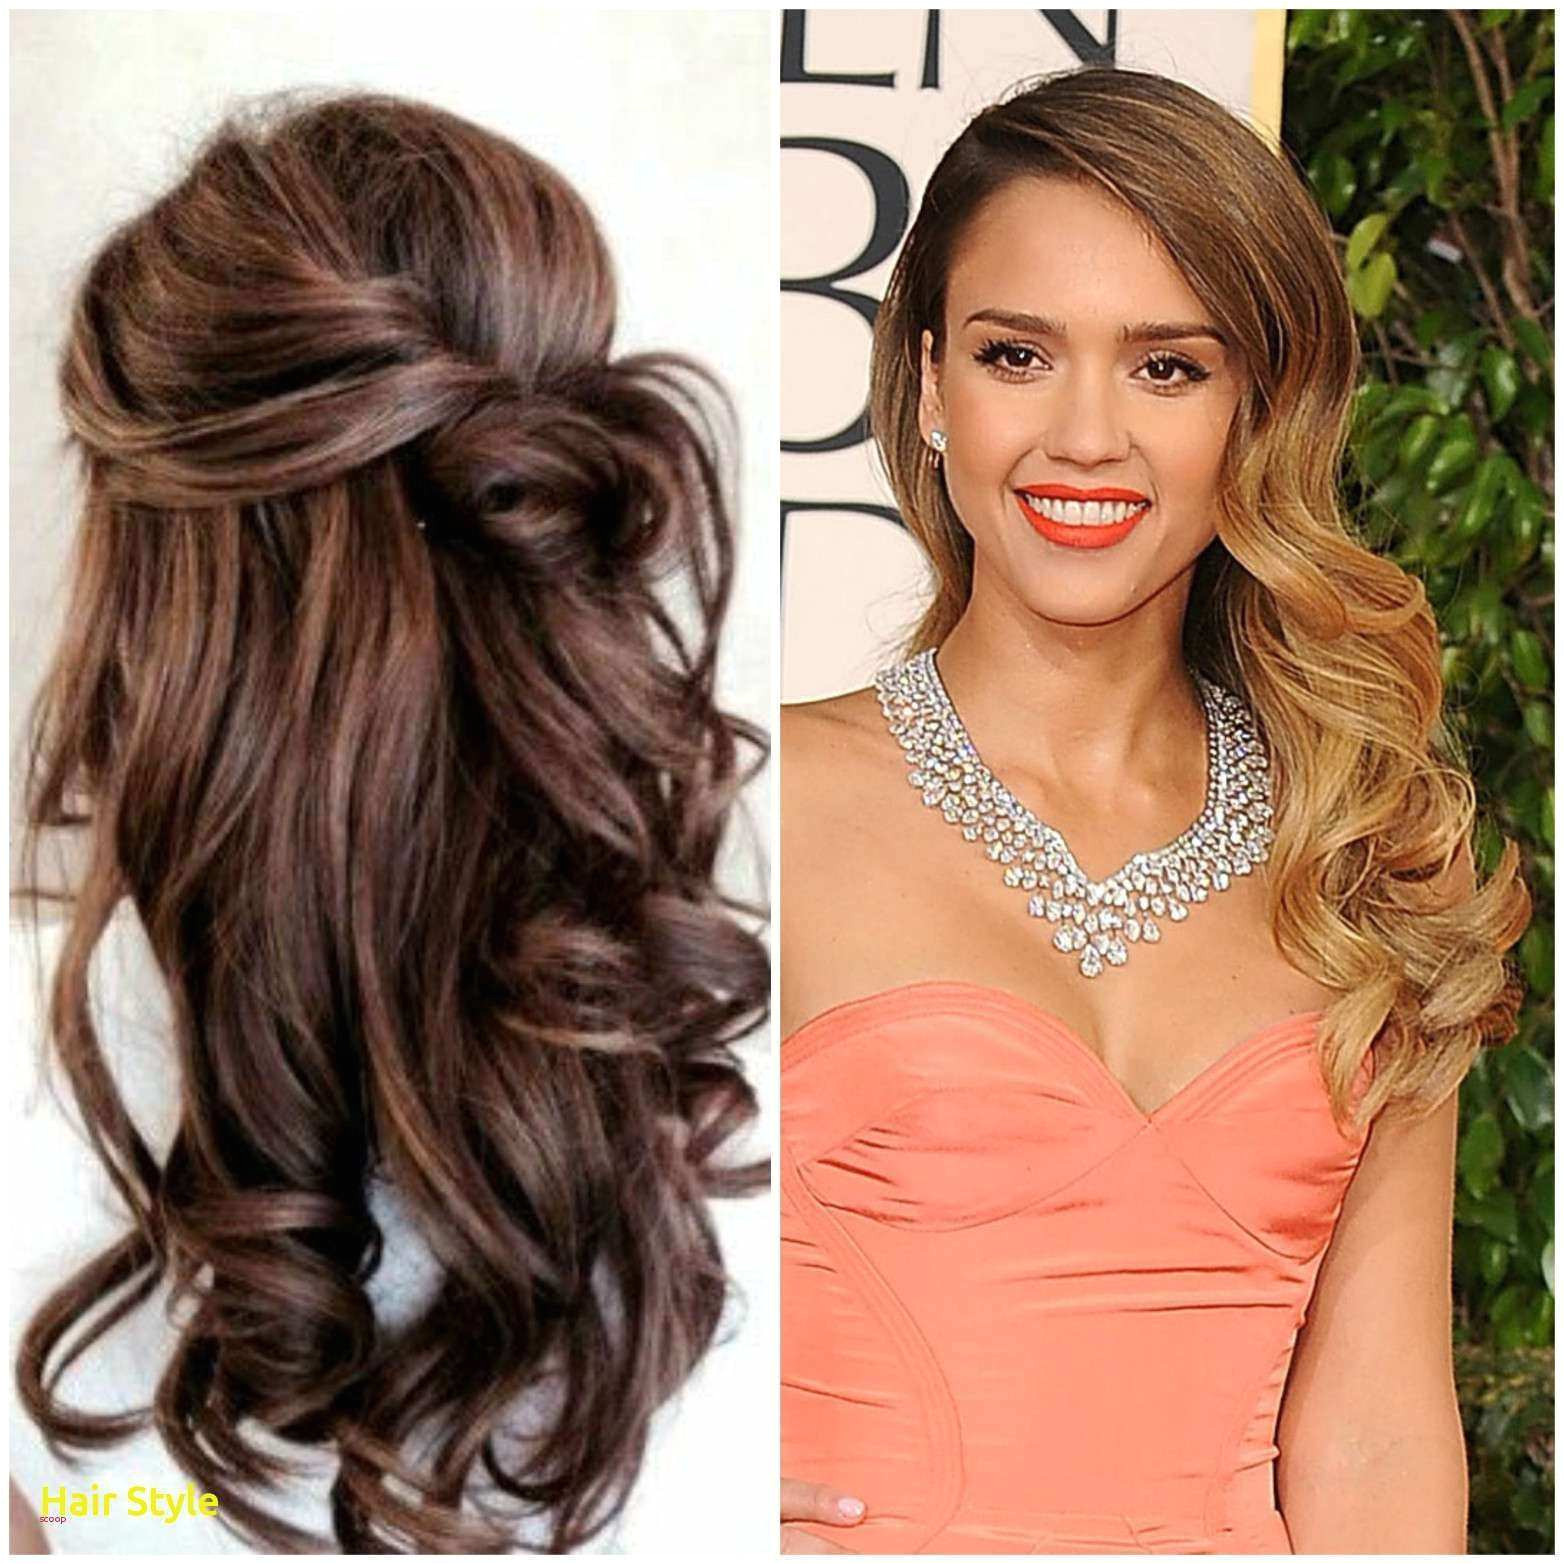 Easy Hairstyles for Girls to Do at Home New Elegant Cute Hairstyles Easy to Do at